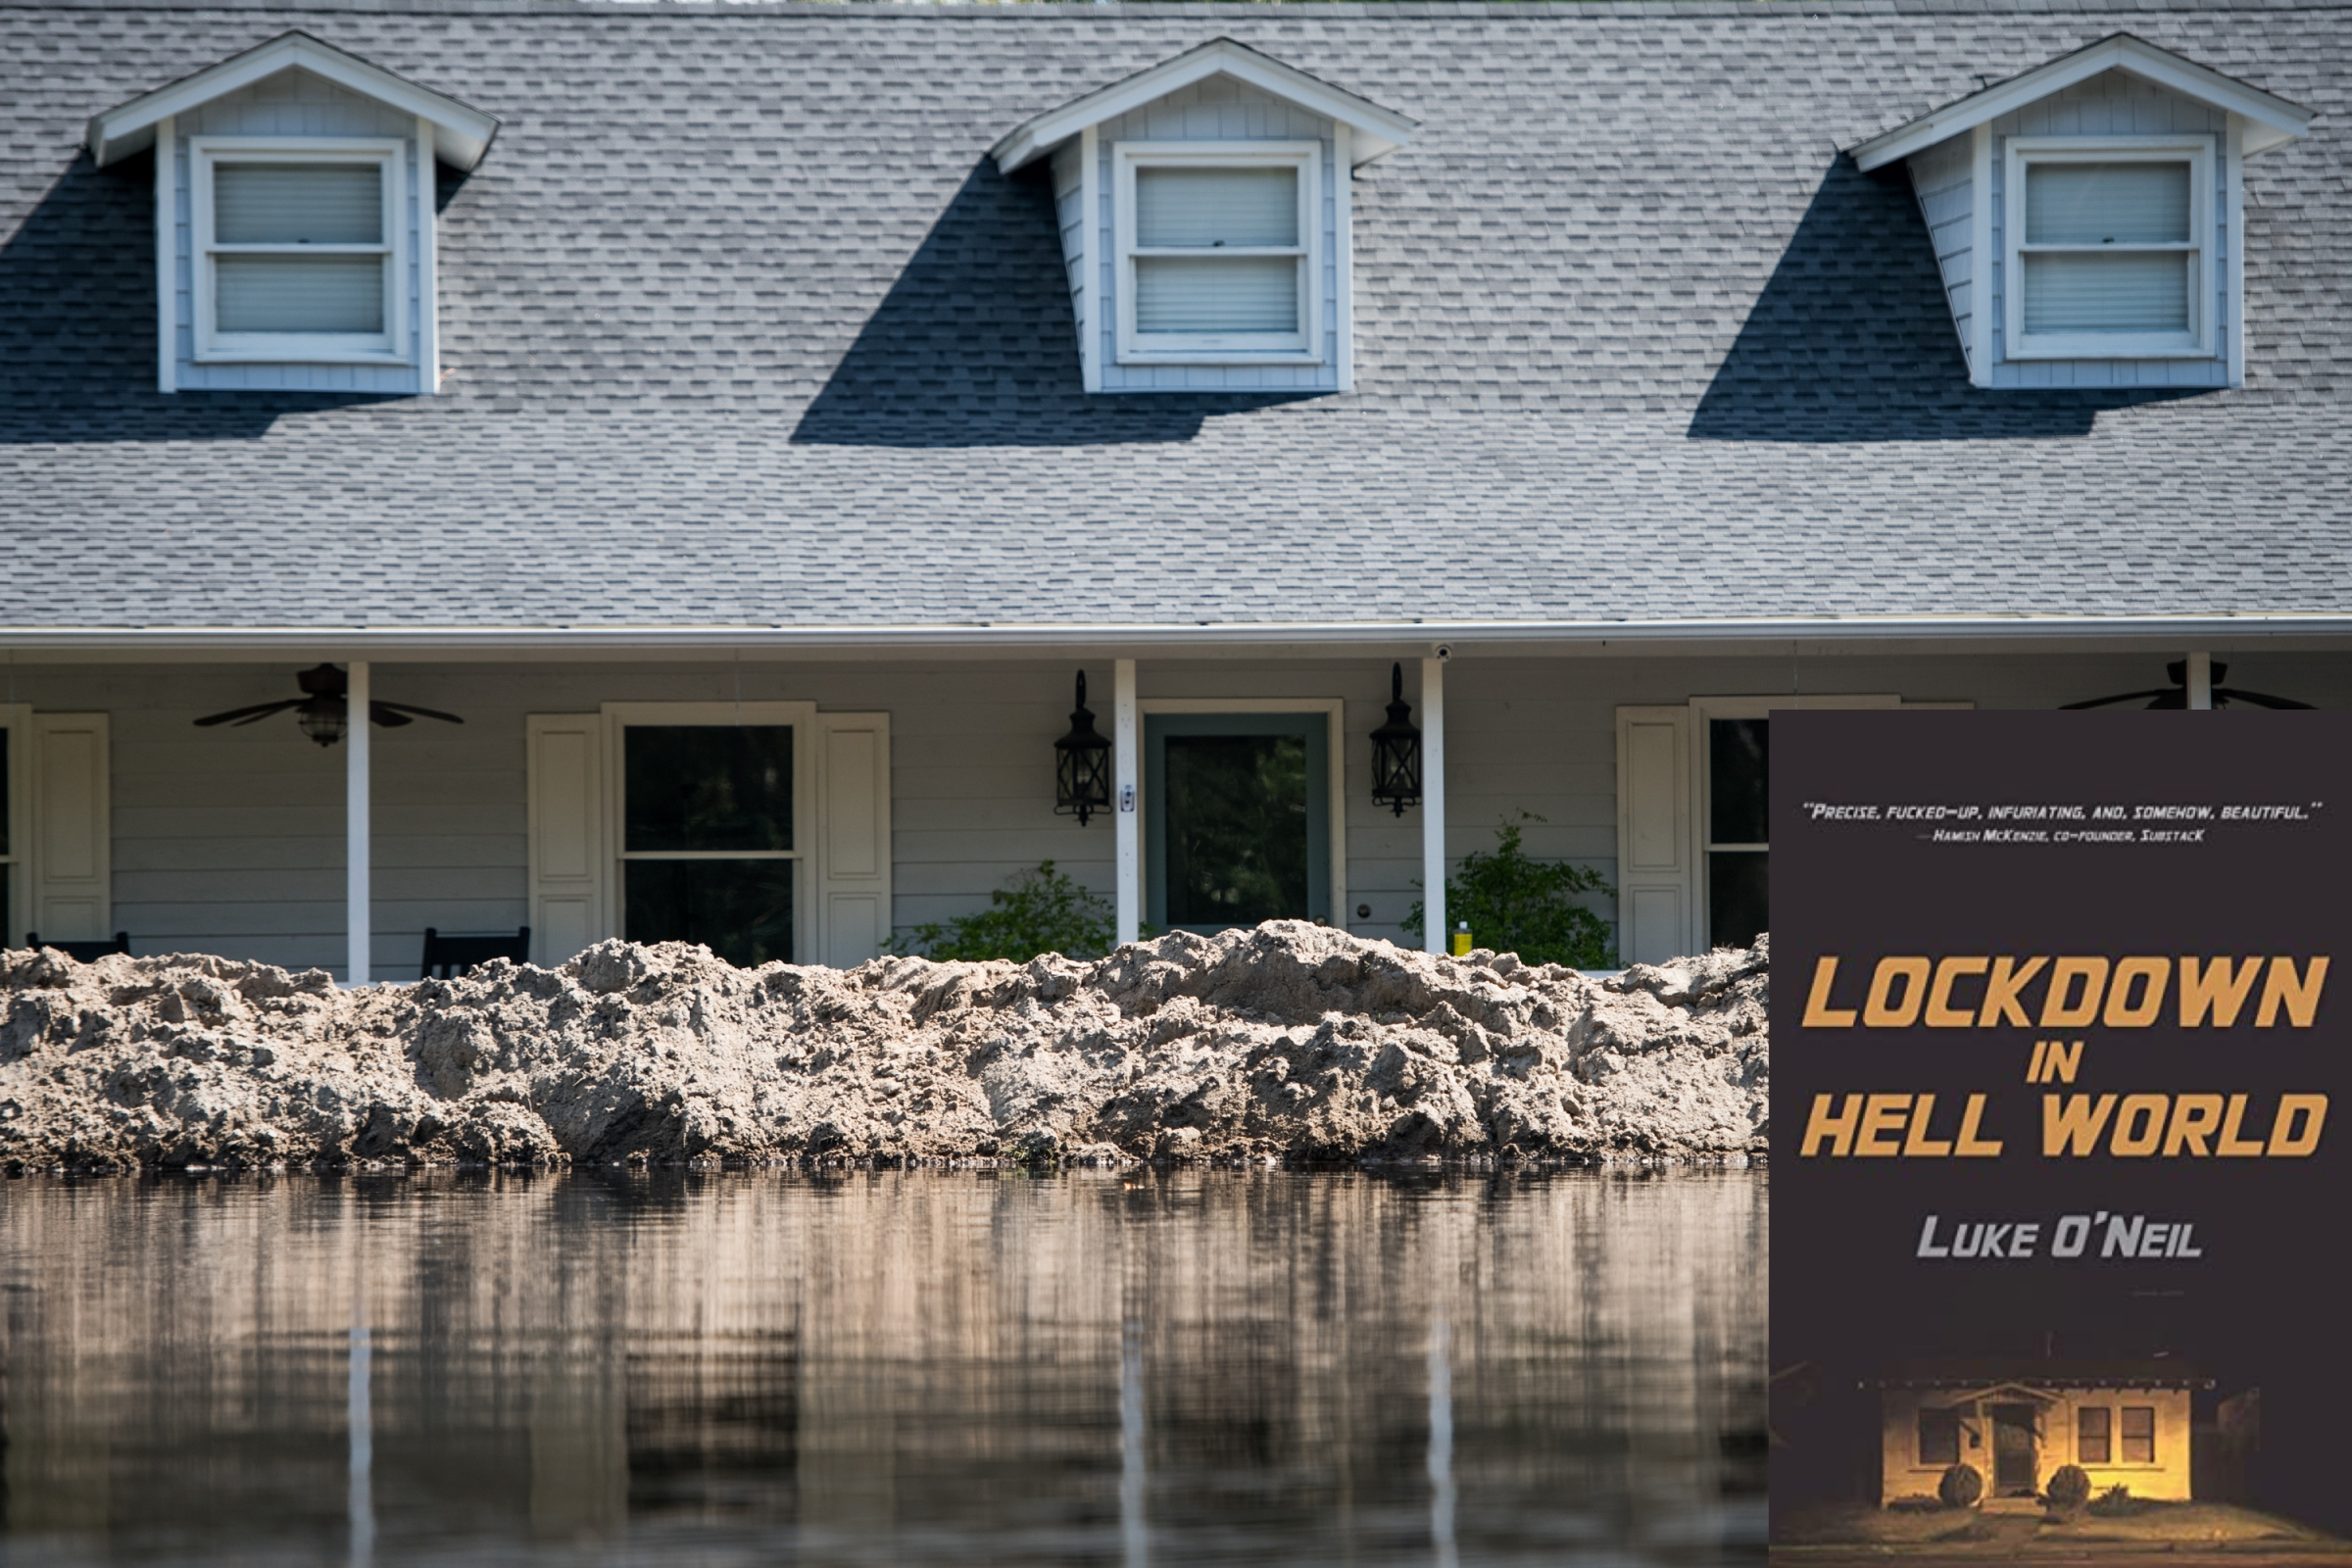 A house in South Carolina seen during historic flooding in 2018. Also Luke's book cover is on there.